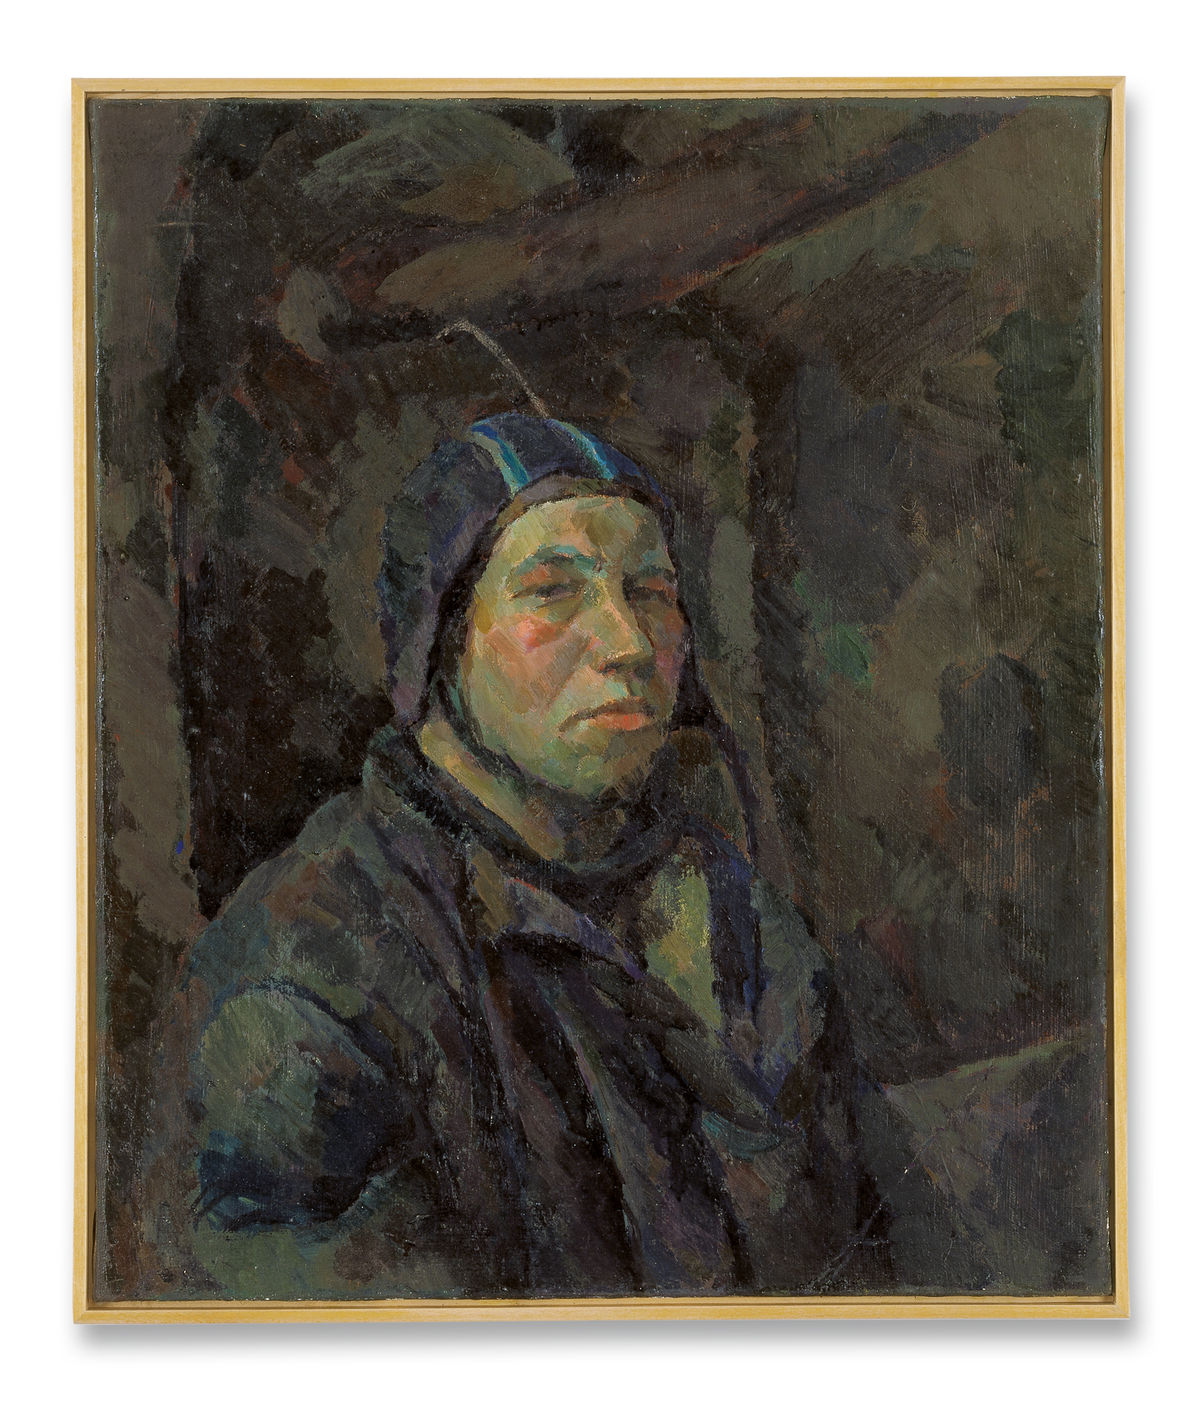 Ilya-Kabakov's-self-portrait-was-painted-a-year-after-Yuri-Gagarin-became-the-first-man-to-orb.jpeg